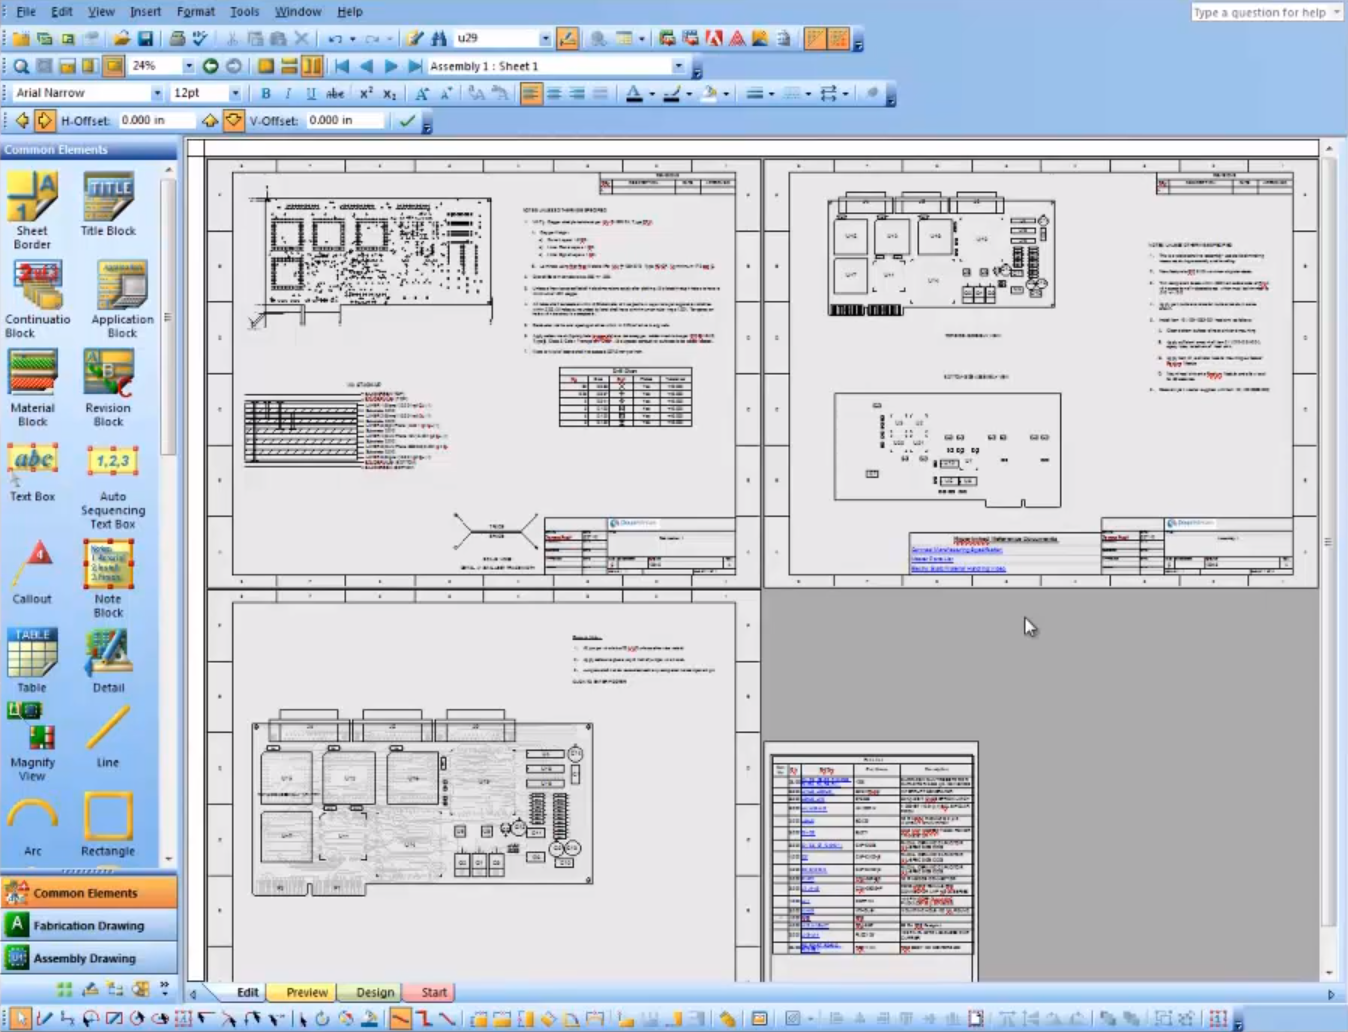 Fabrication and assembly drawing through documentation editor in OrCAD designer